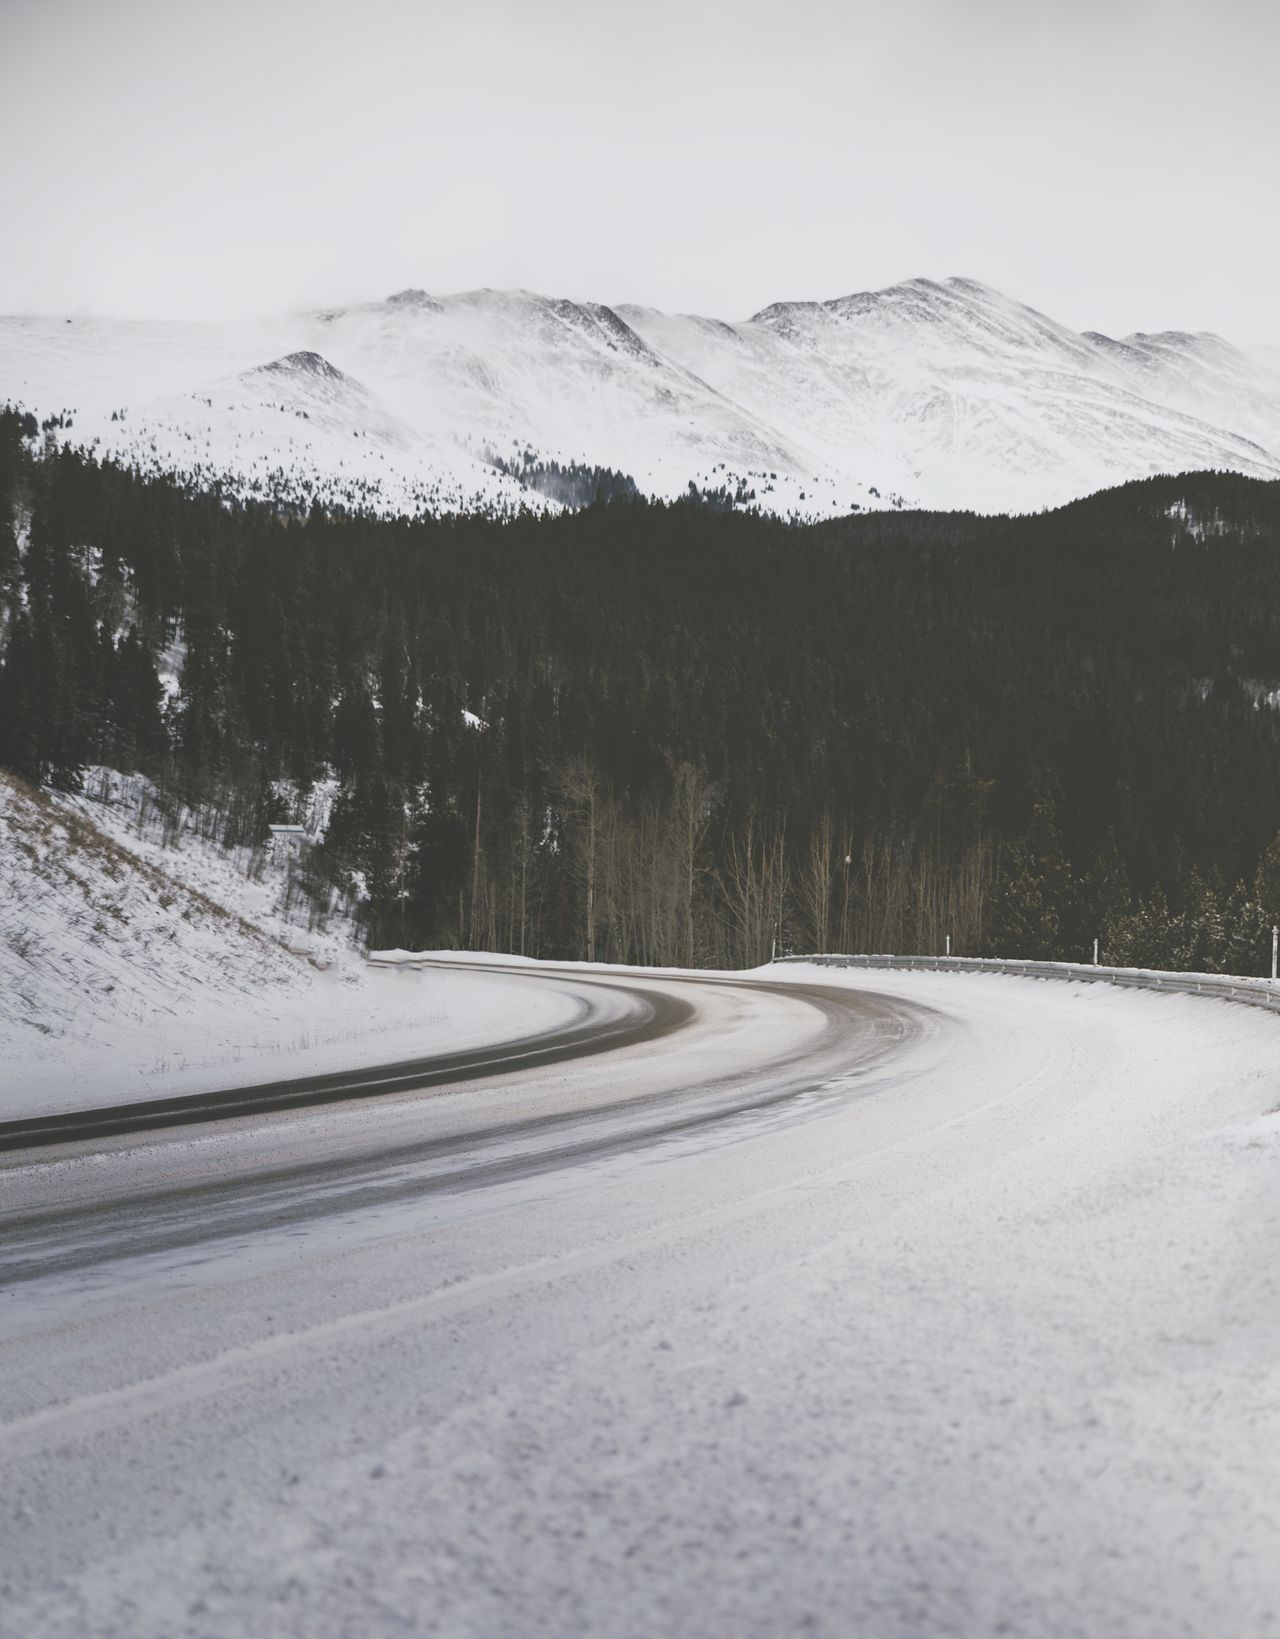 Snow Winter Cold Temperature Nature Mountain Landscape Outdoors Beauty In Nature Road Scenics No People Day Tree Sky